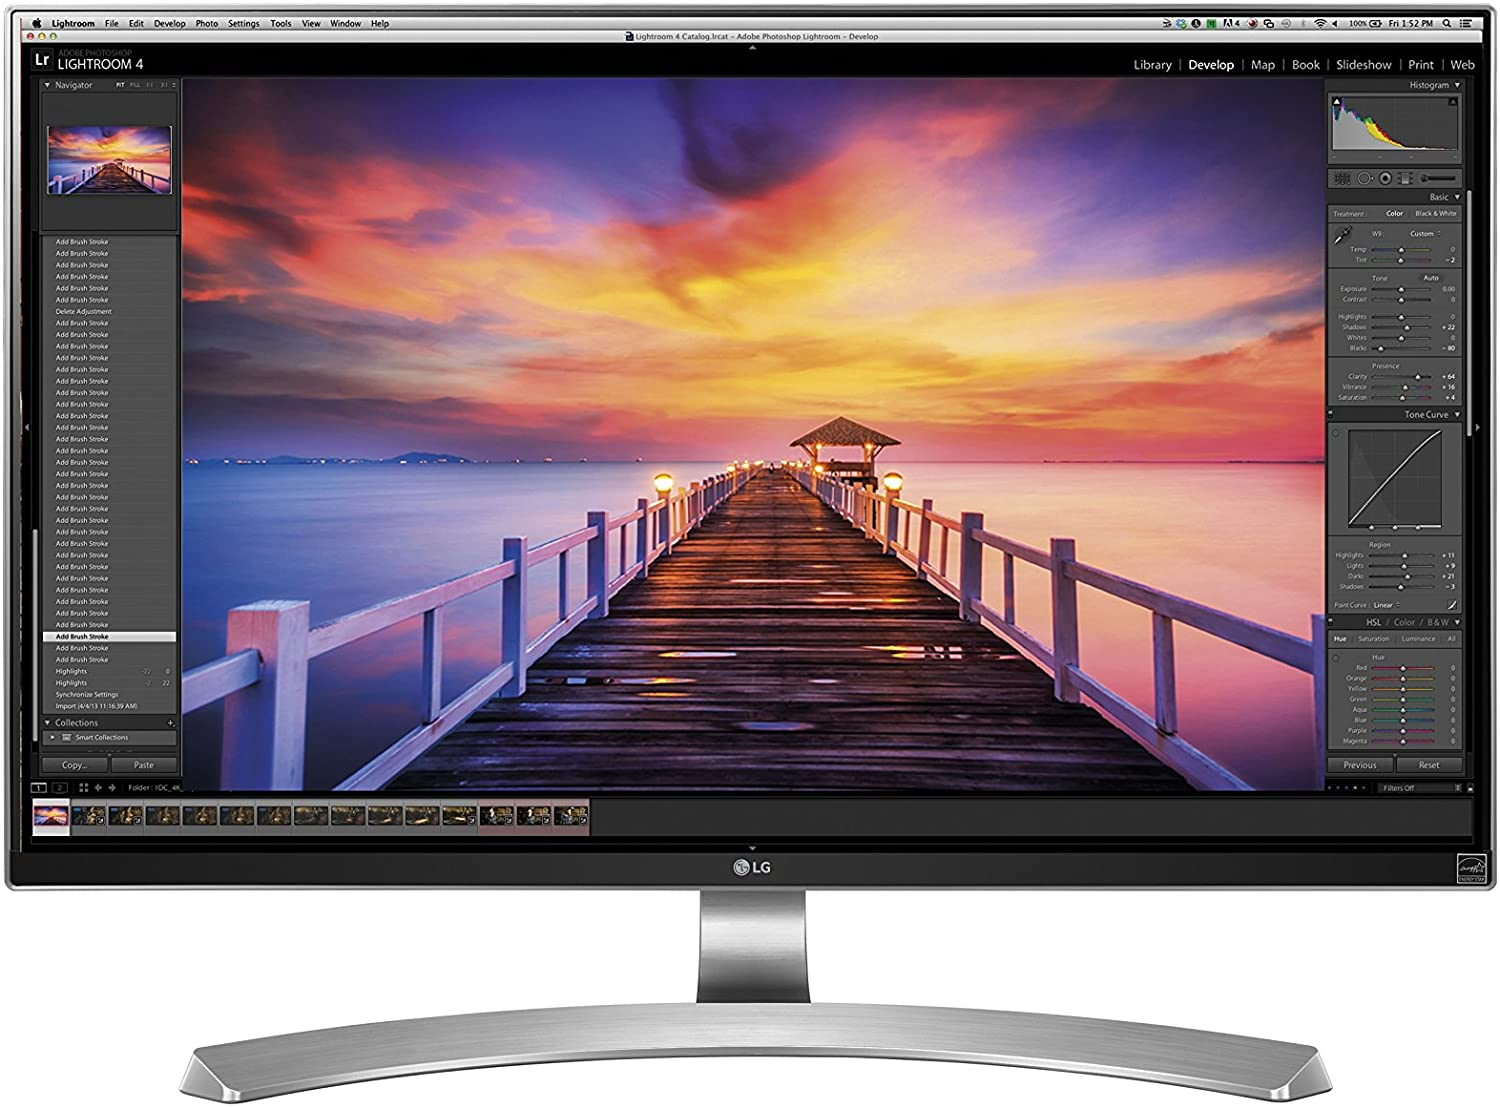 "27"" LG UD88-W 4K UHD Professional Monitor with USB Type-C is now priced at $500"